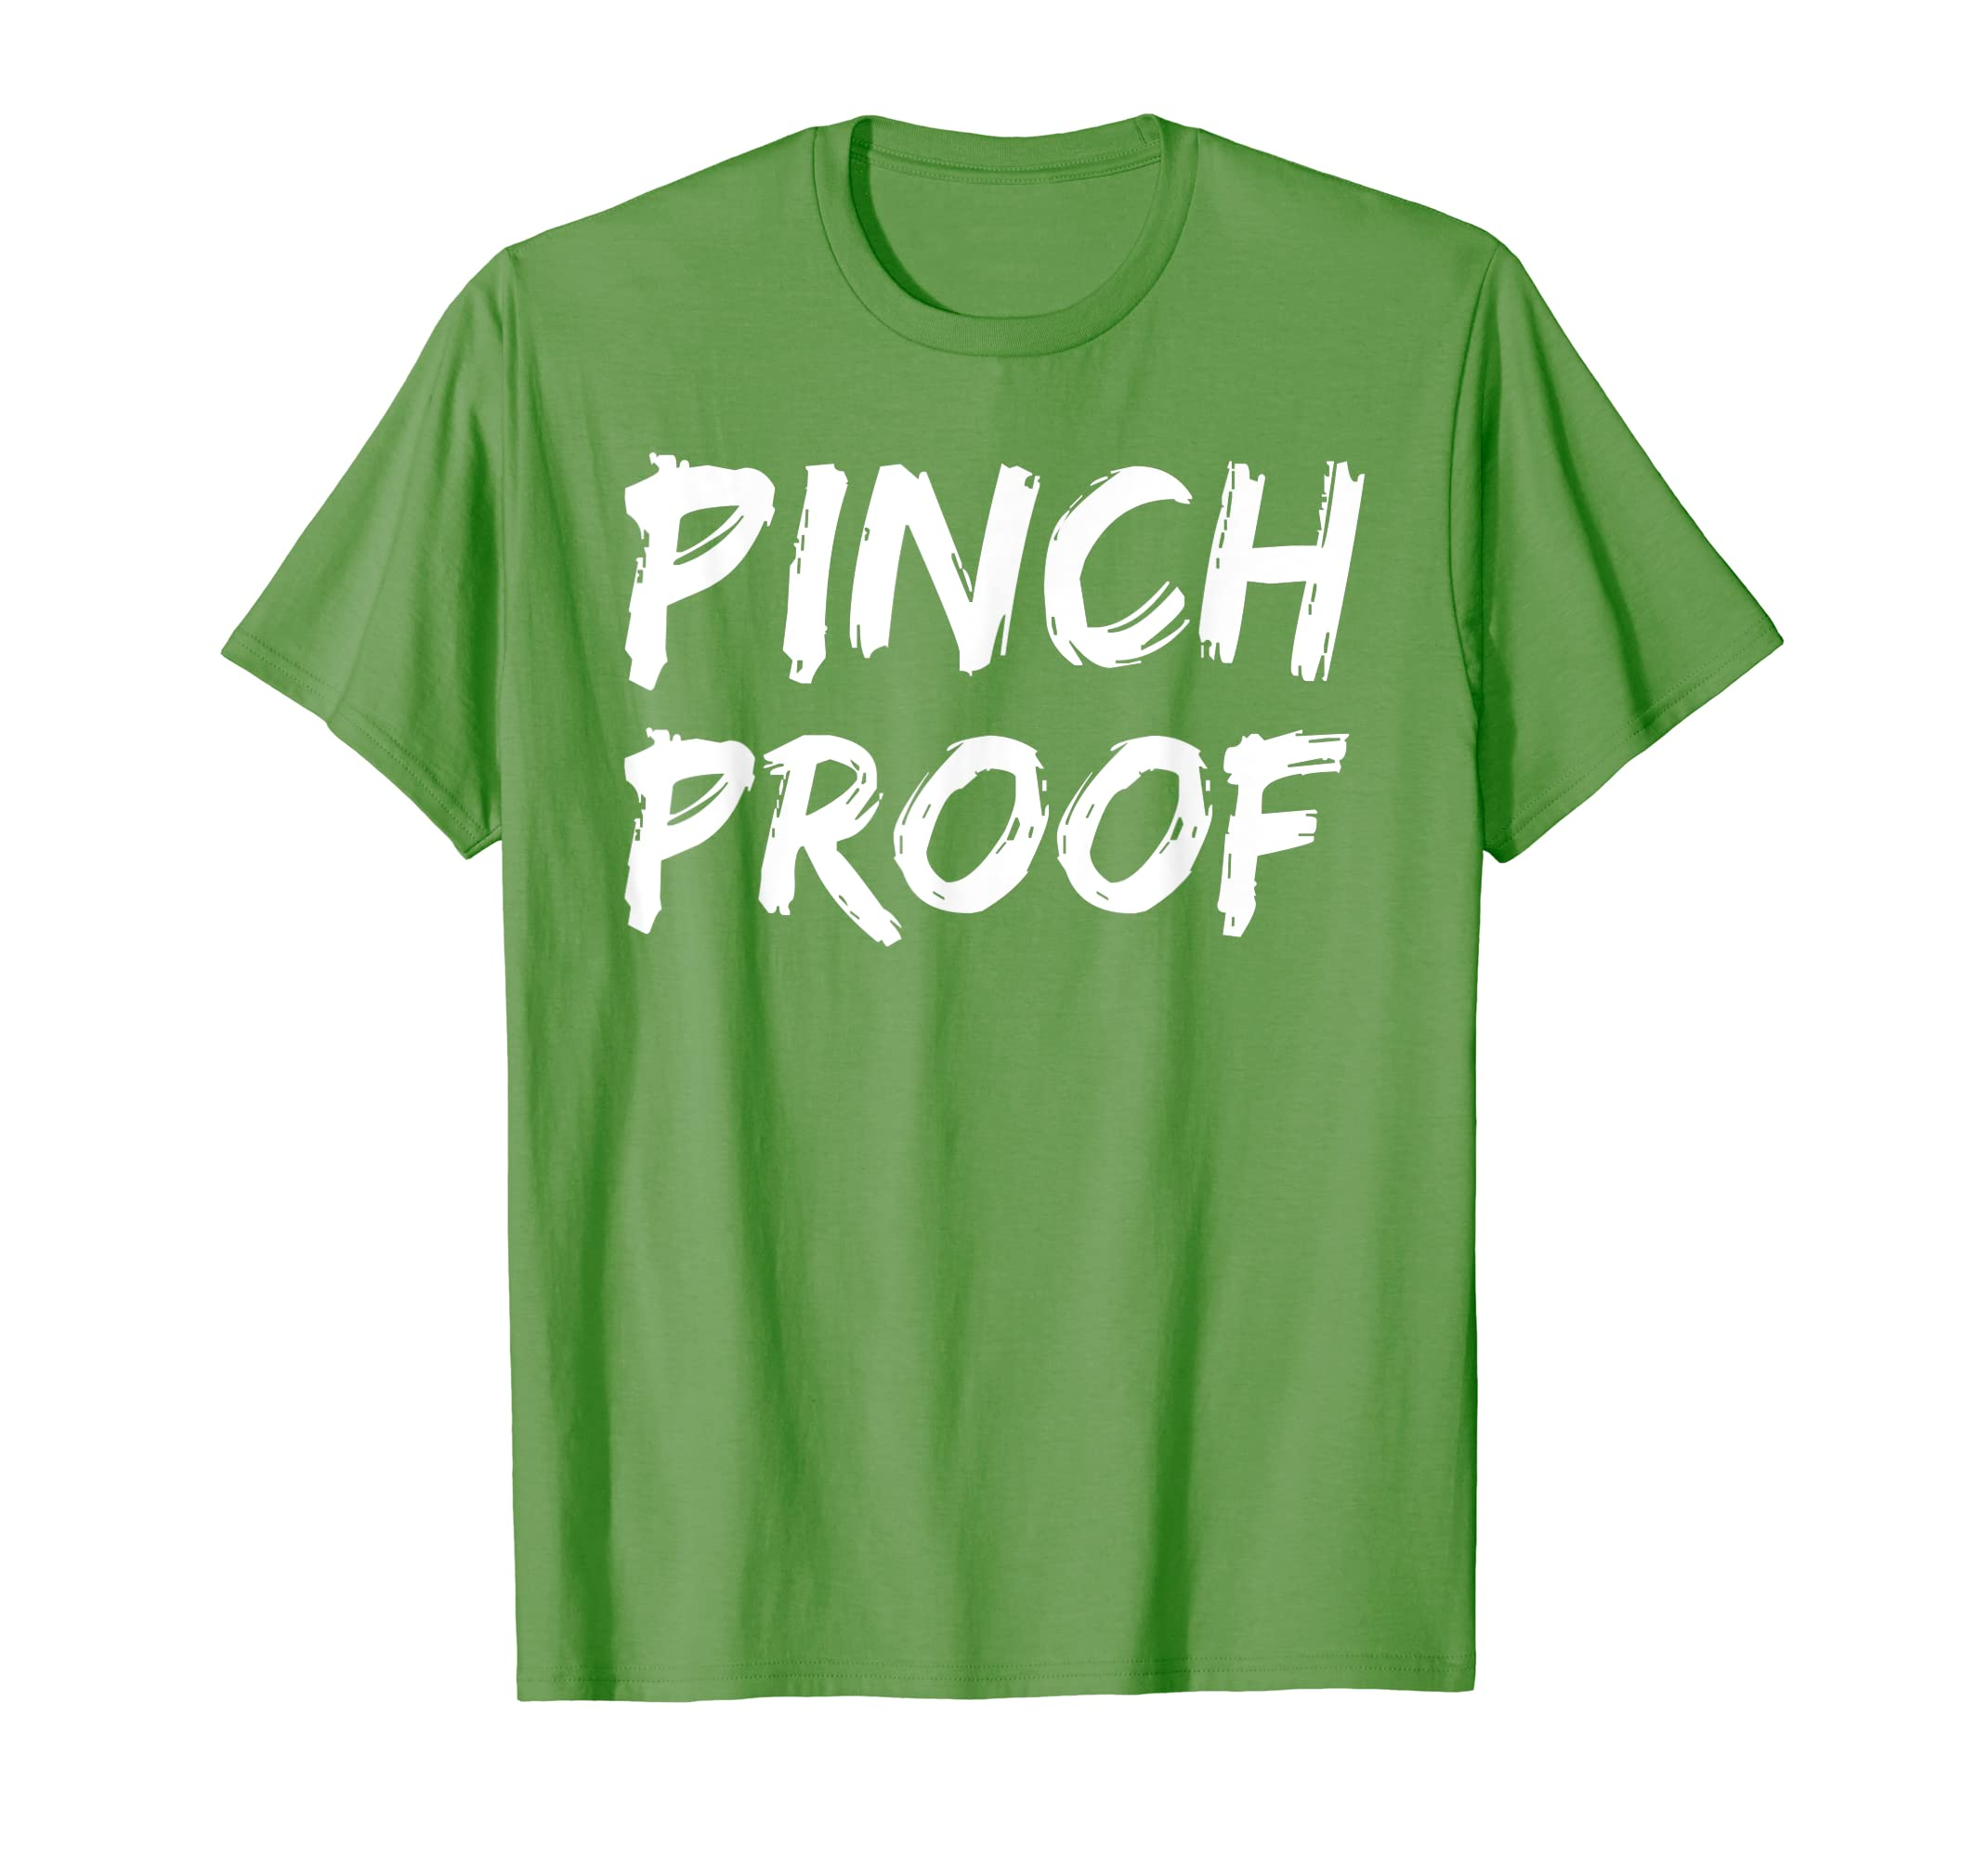 595868665 Amazon.com: Pinch Proof Shirt for Boys Funny St Patricks Day Tshirt Girl:  Clothing